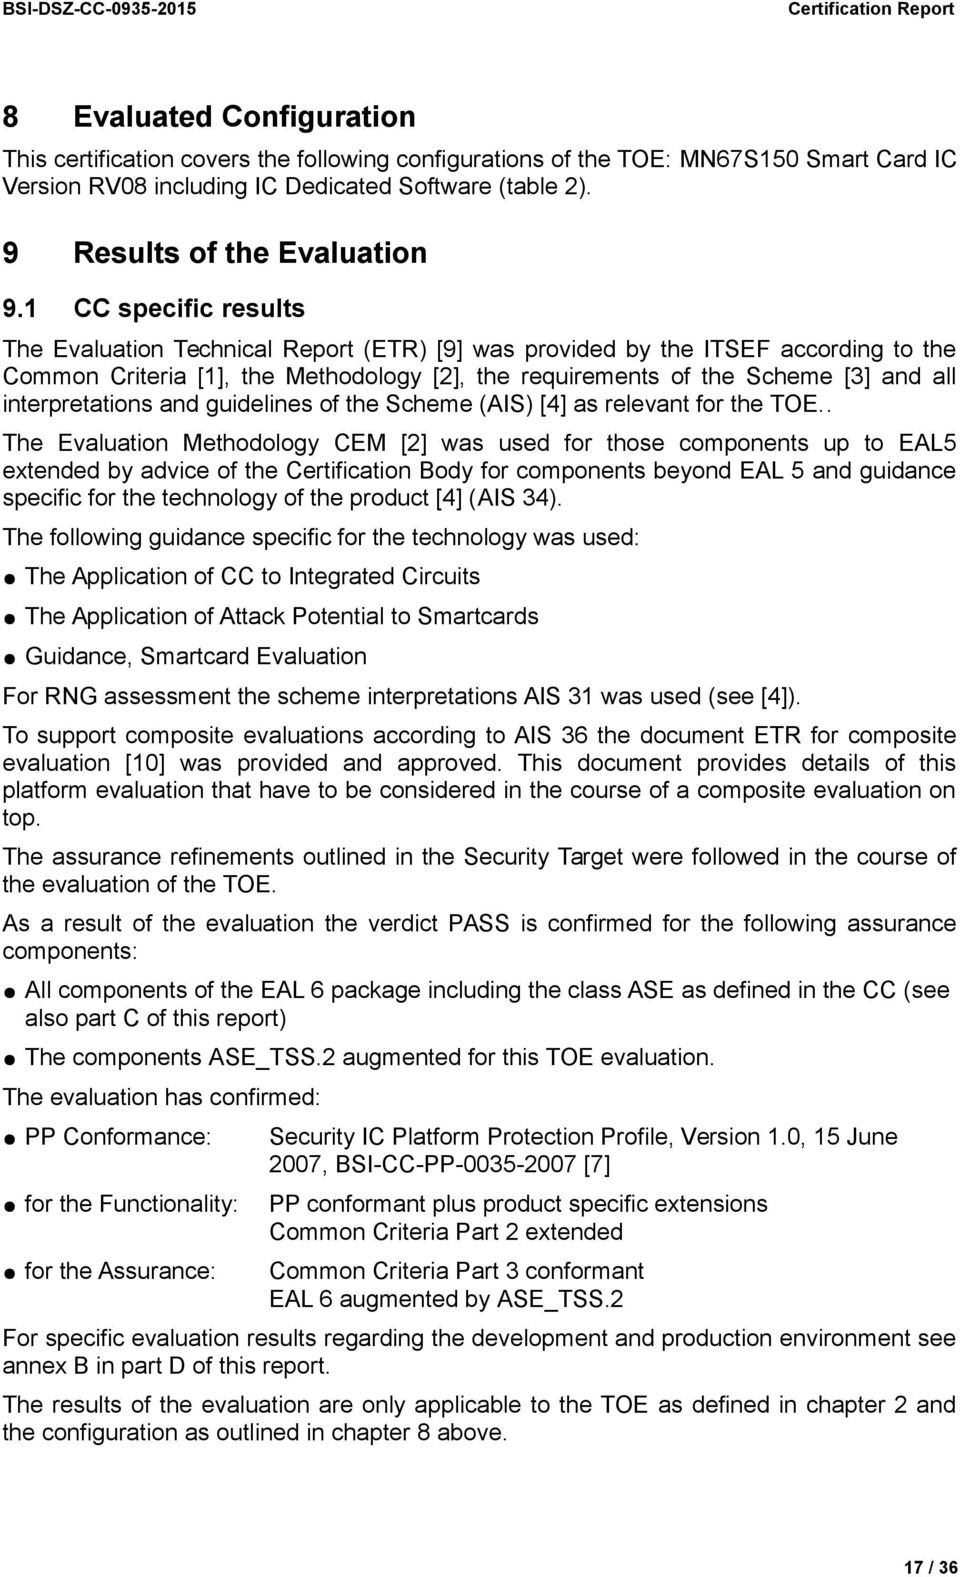 1 CC specific results The Evaluation Technical Report (ETR) [9] was provided by the ITSEF according to the Common Criteria [1], the Methodology [2], the requirements of the Scheme [3] and all